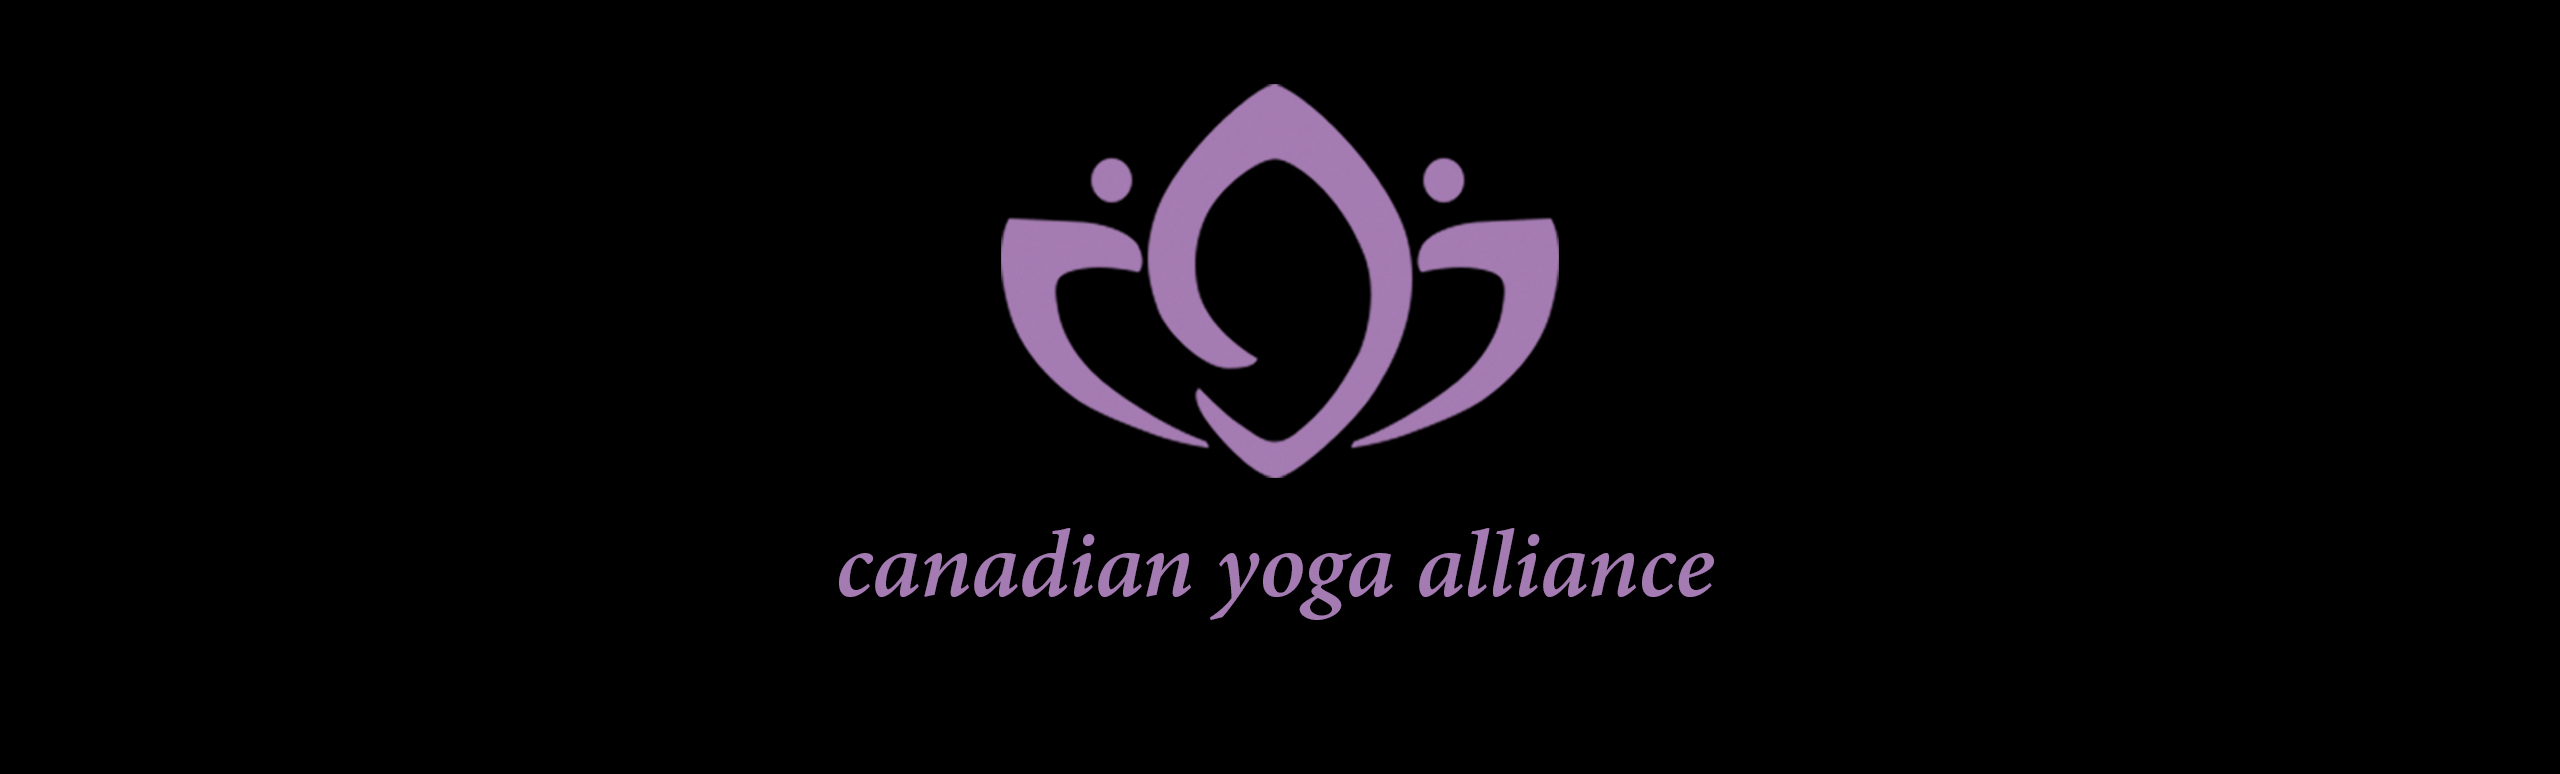 Welcome to the Canadian Yoga Alliance